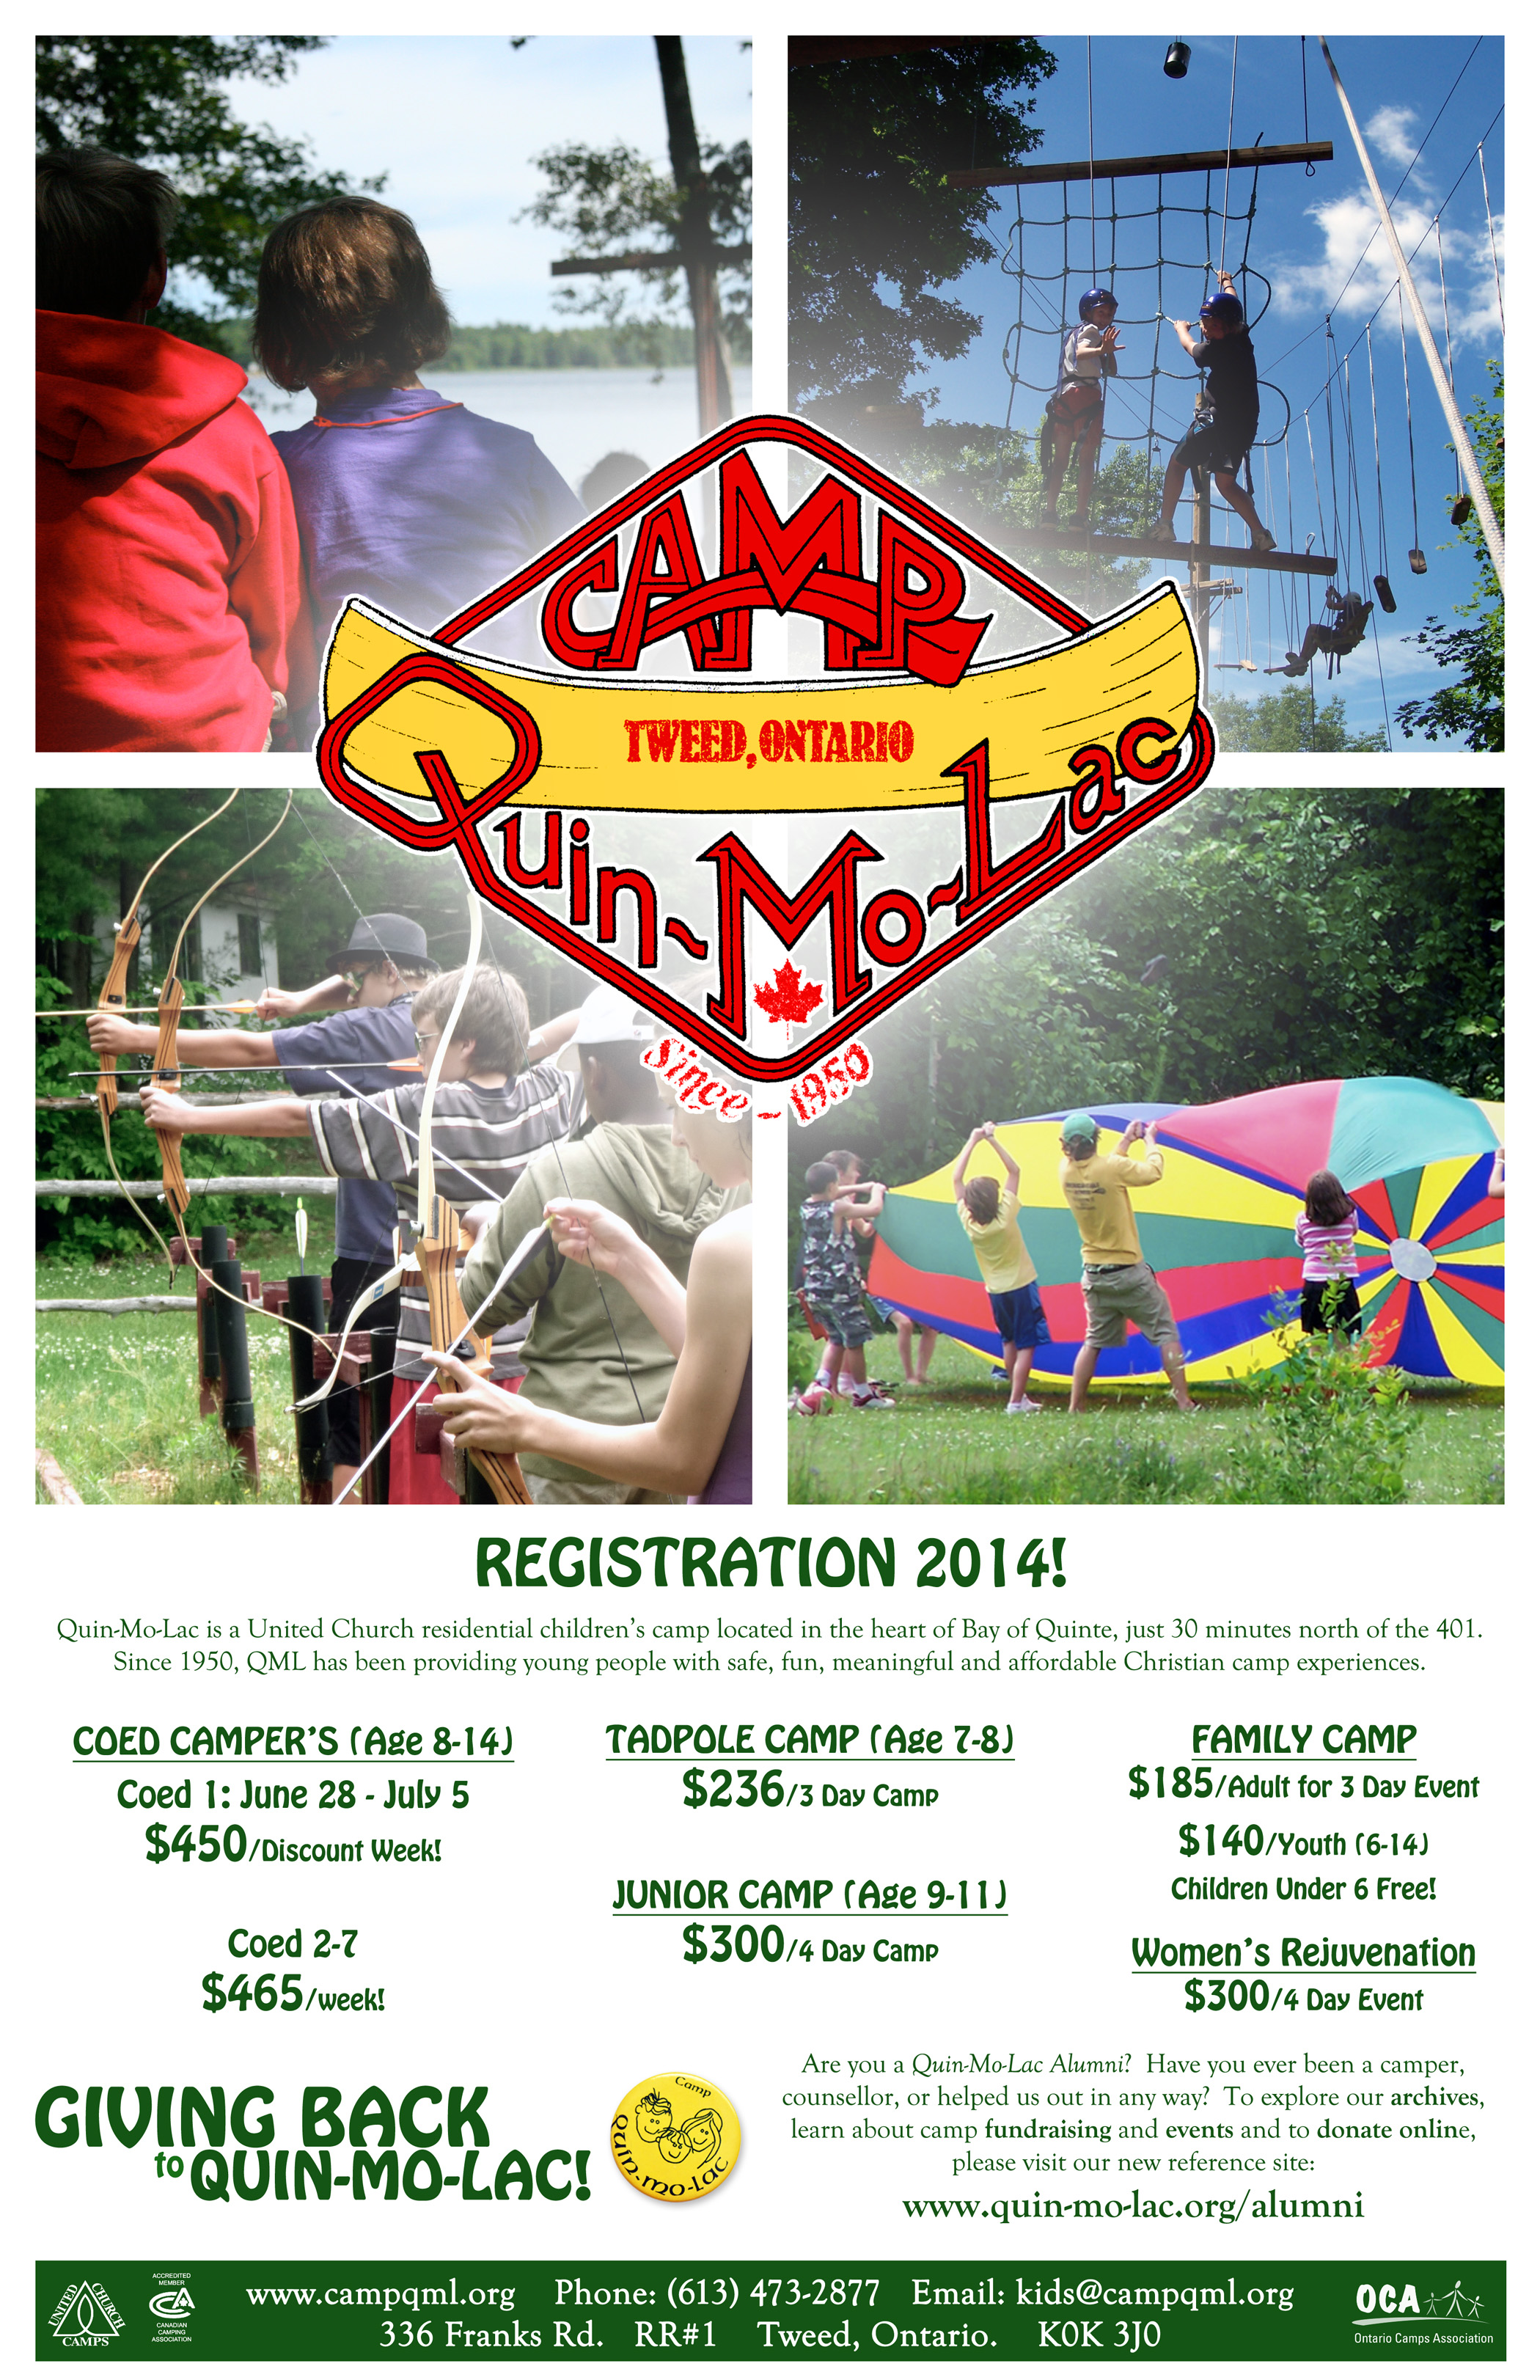 CLICK HERE TO VIEW OUR 2014 RATES POSTER